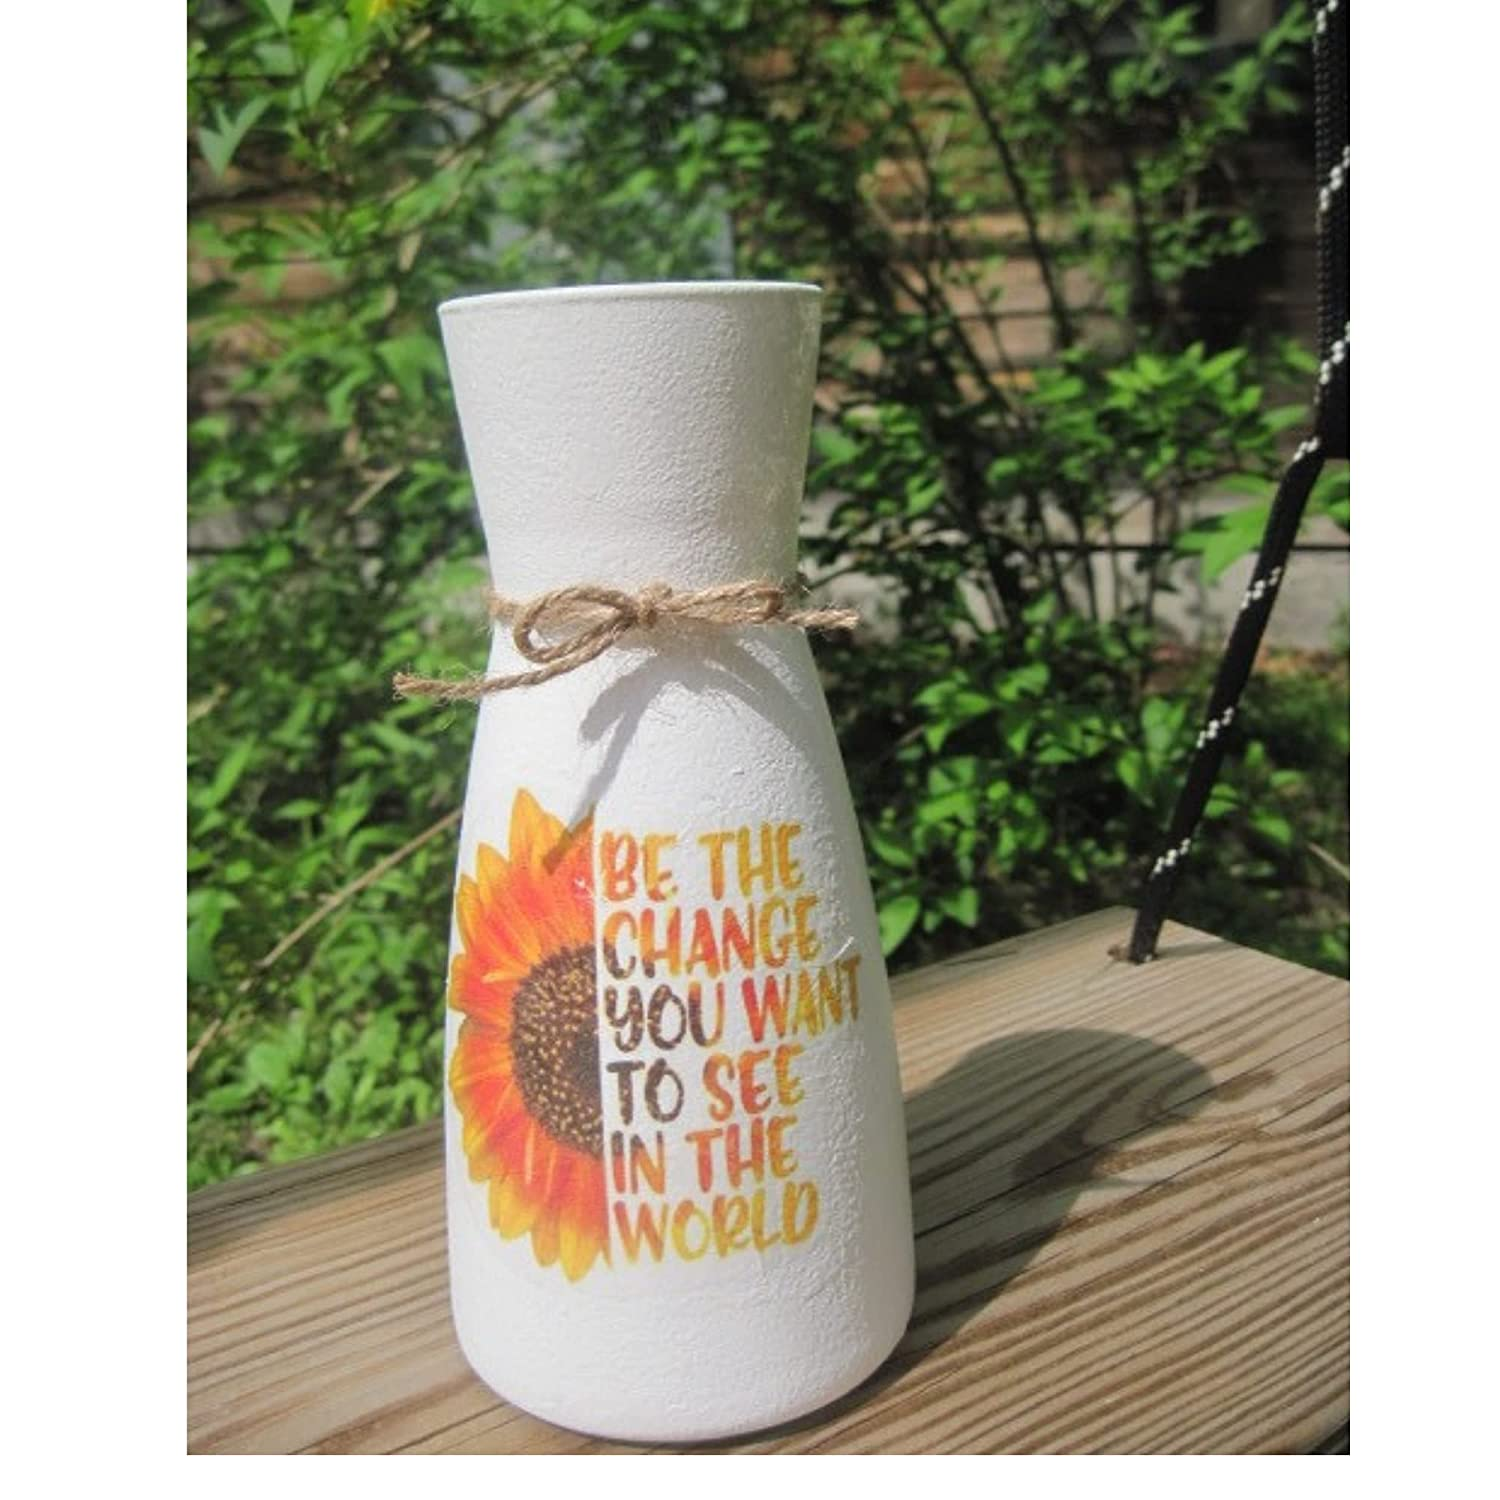 Be Max 77% OFF the Gorgeous change flower painted vase with butterfly and sunflower